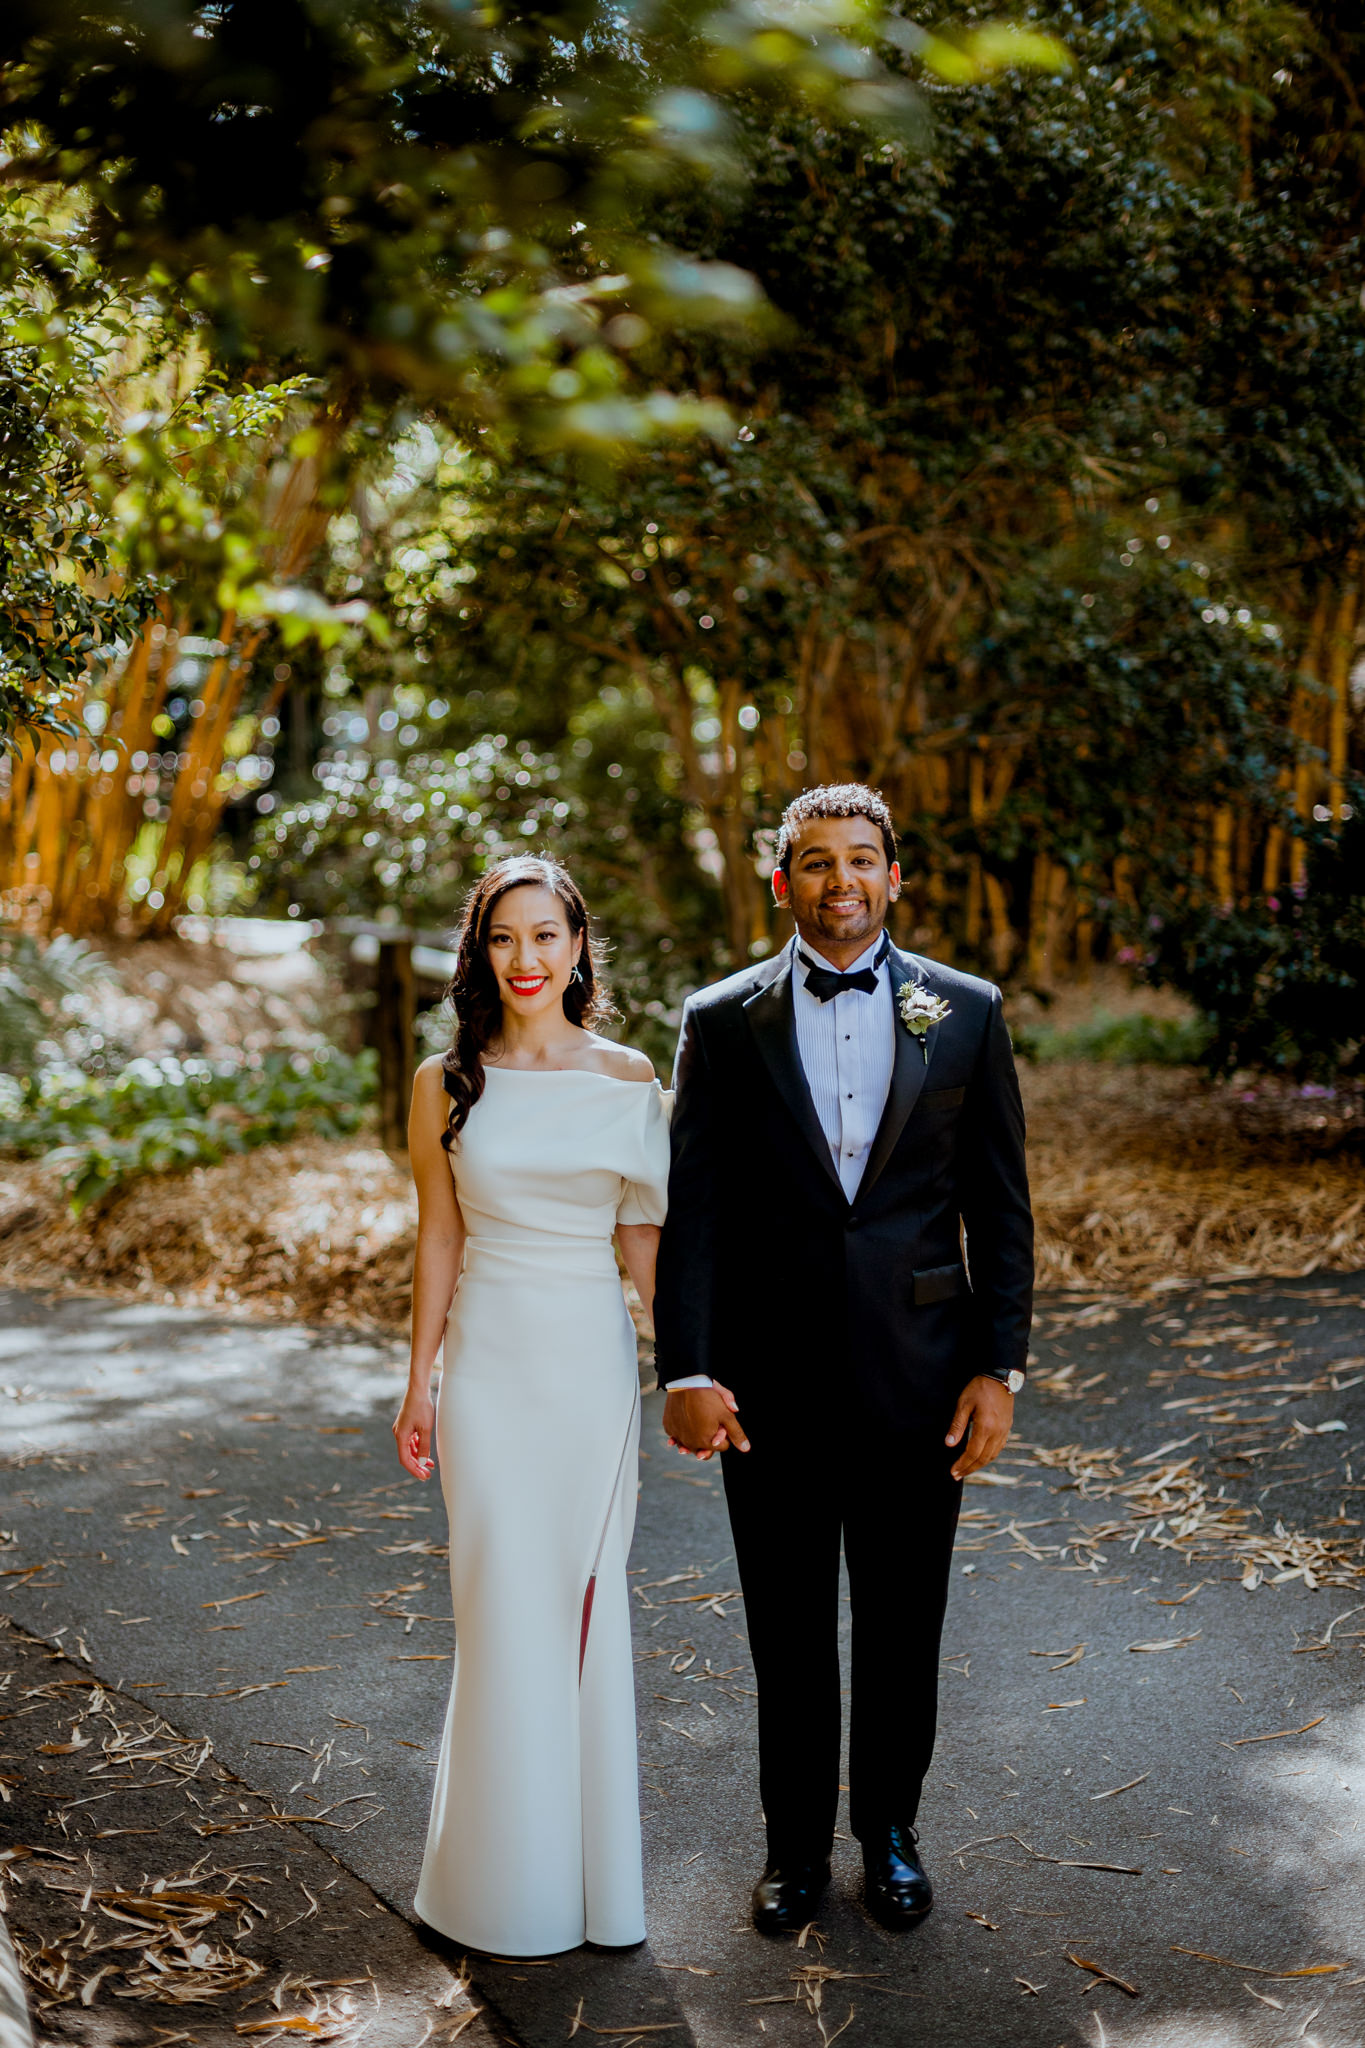 Asian bride and Indian groom standing towards camera in a bamboo garden